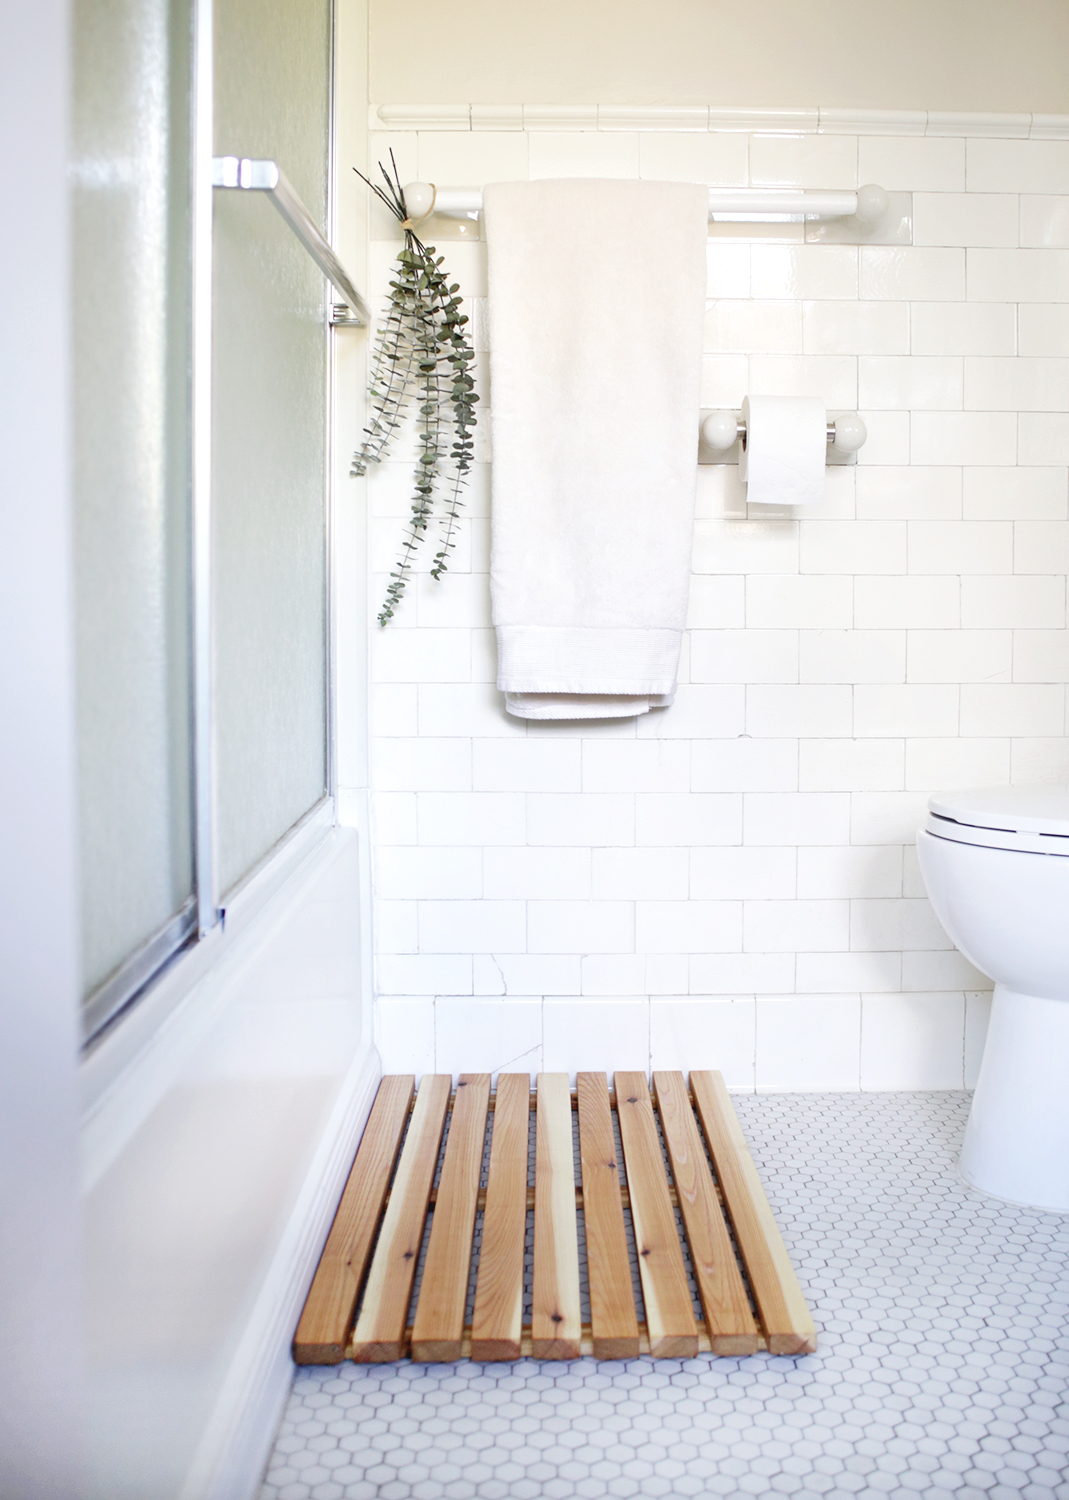 A cedar bath mat is a great DIY project